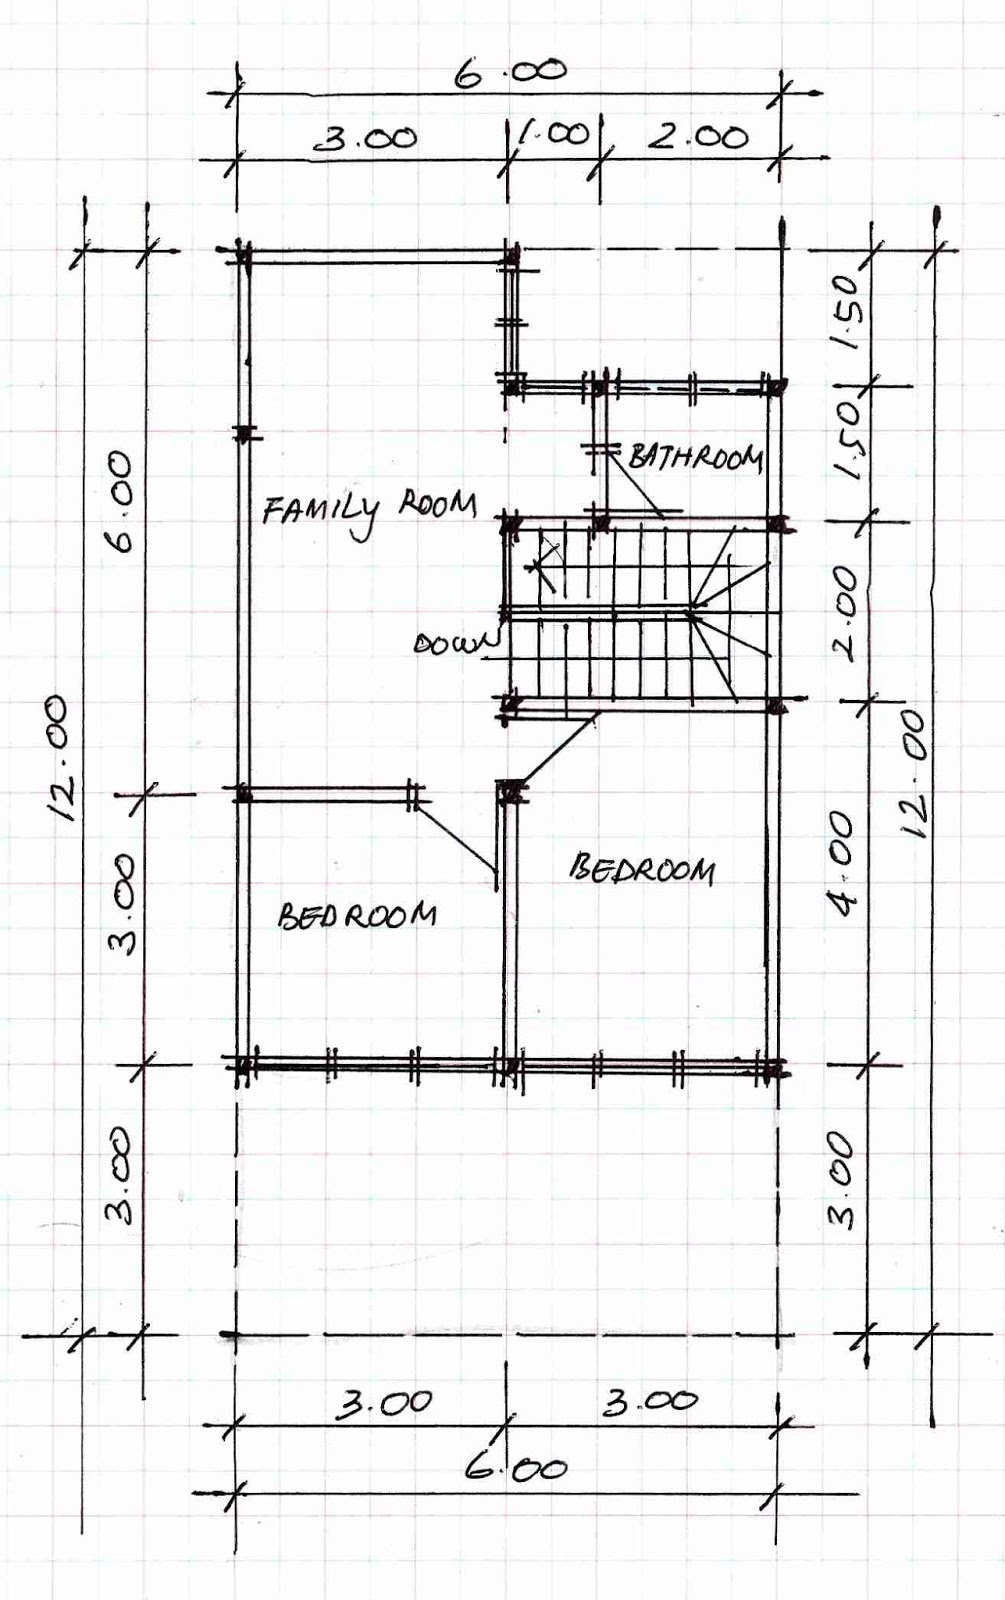 House design for 90 sqm lot - House Design For 90 Square Meter